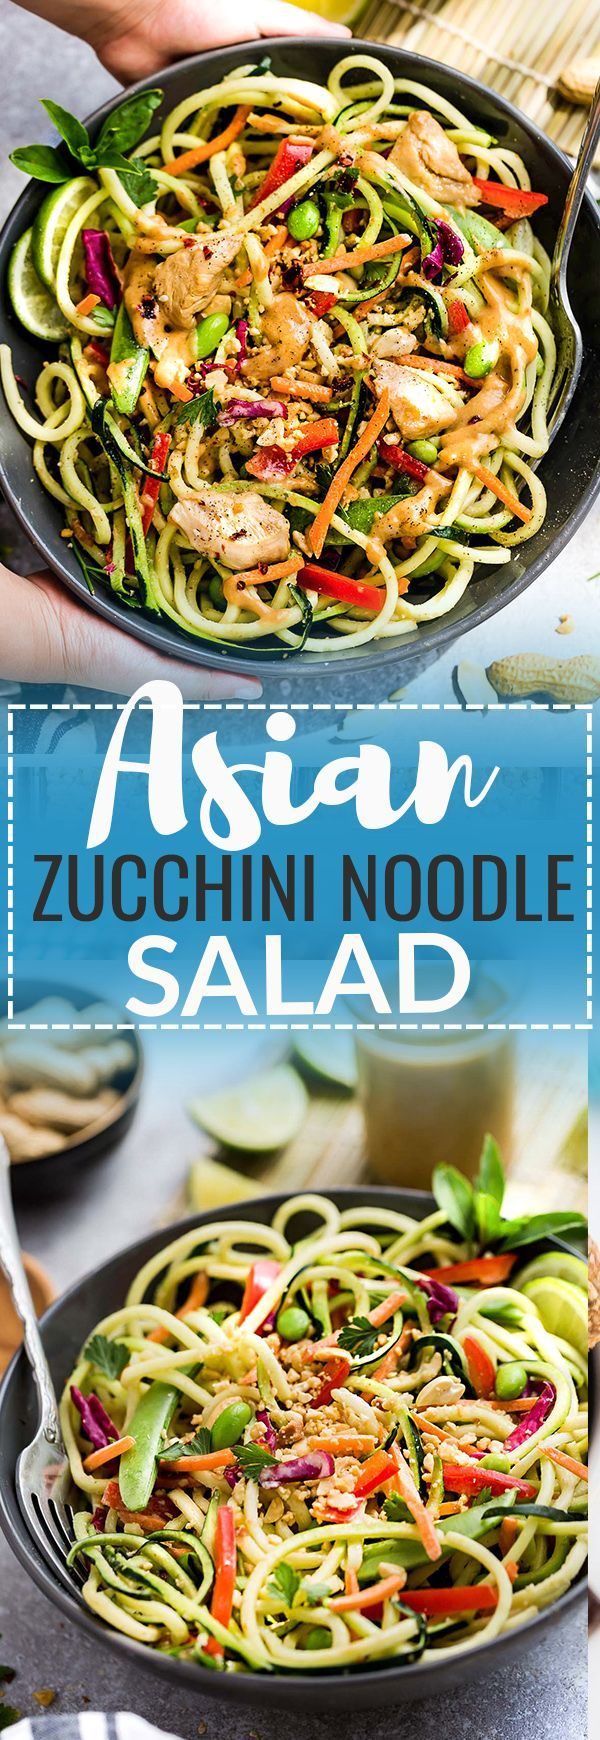 297 best Asian Recipes images on Pinterest | Cooking food, Healthy ...